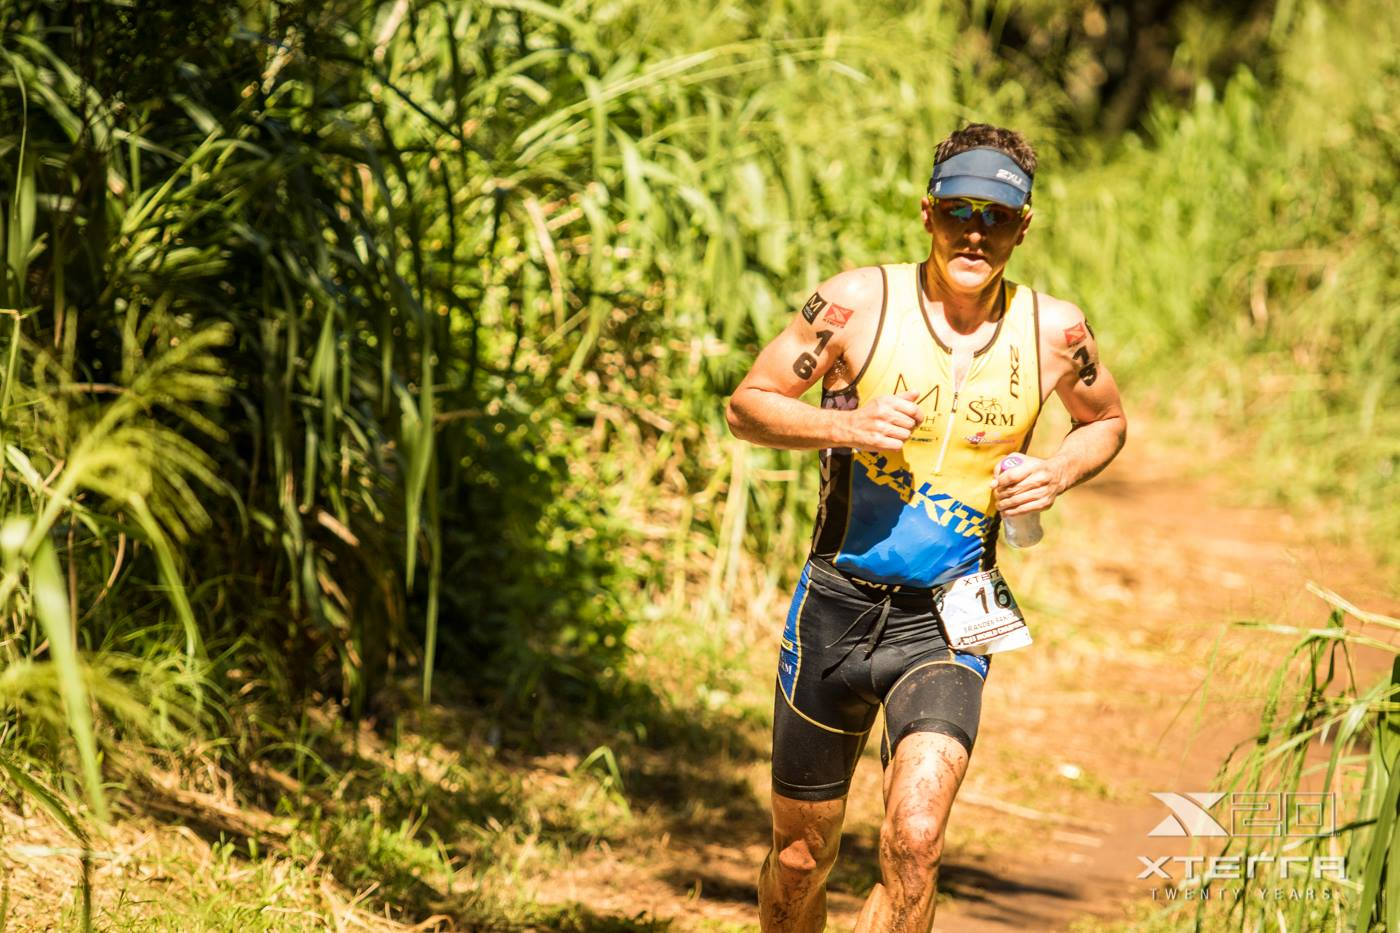 XTERRA_WORLD_CHAMPIONSHIP_2015_00044